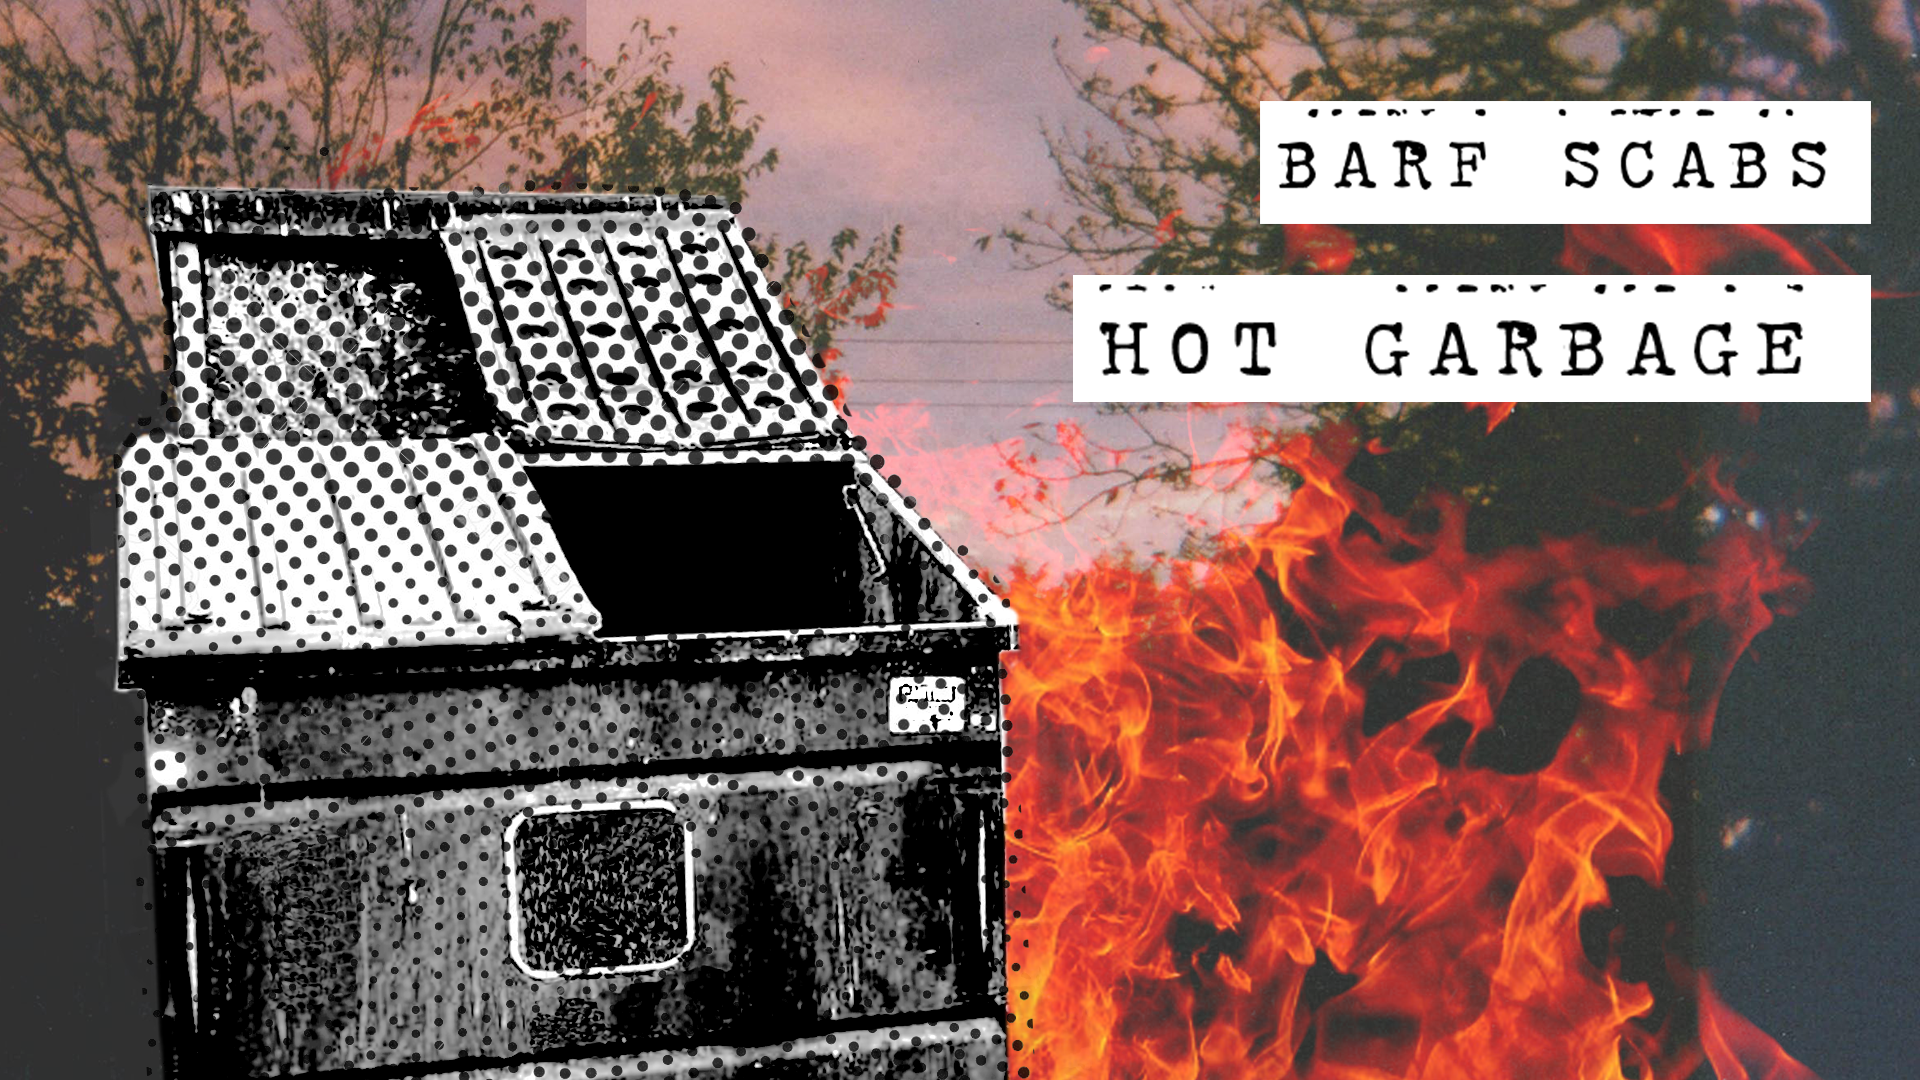 Barf Scabs - Hot Garbage Art Opening